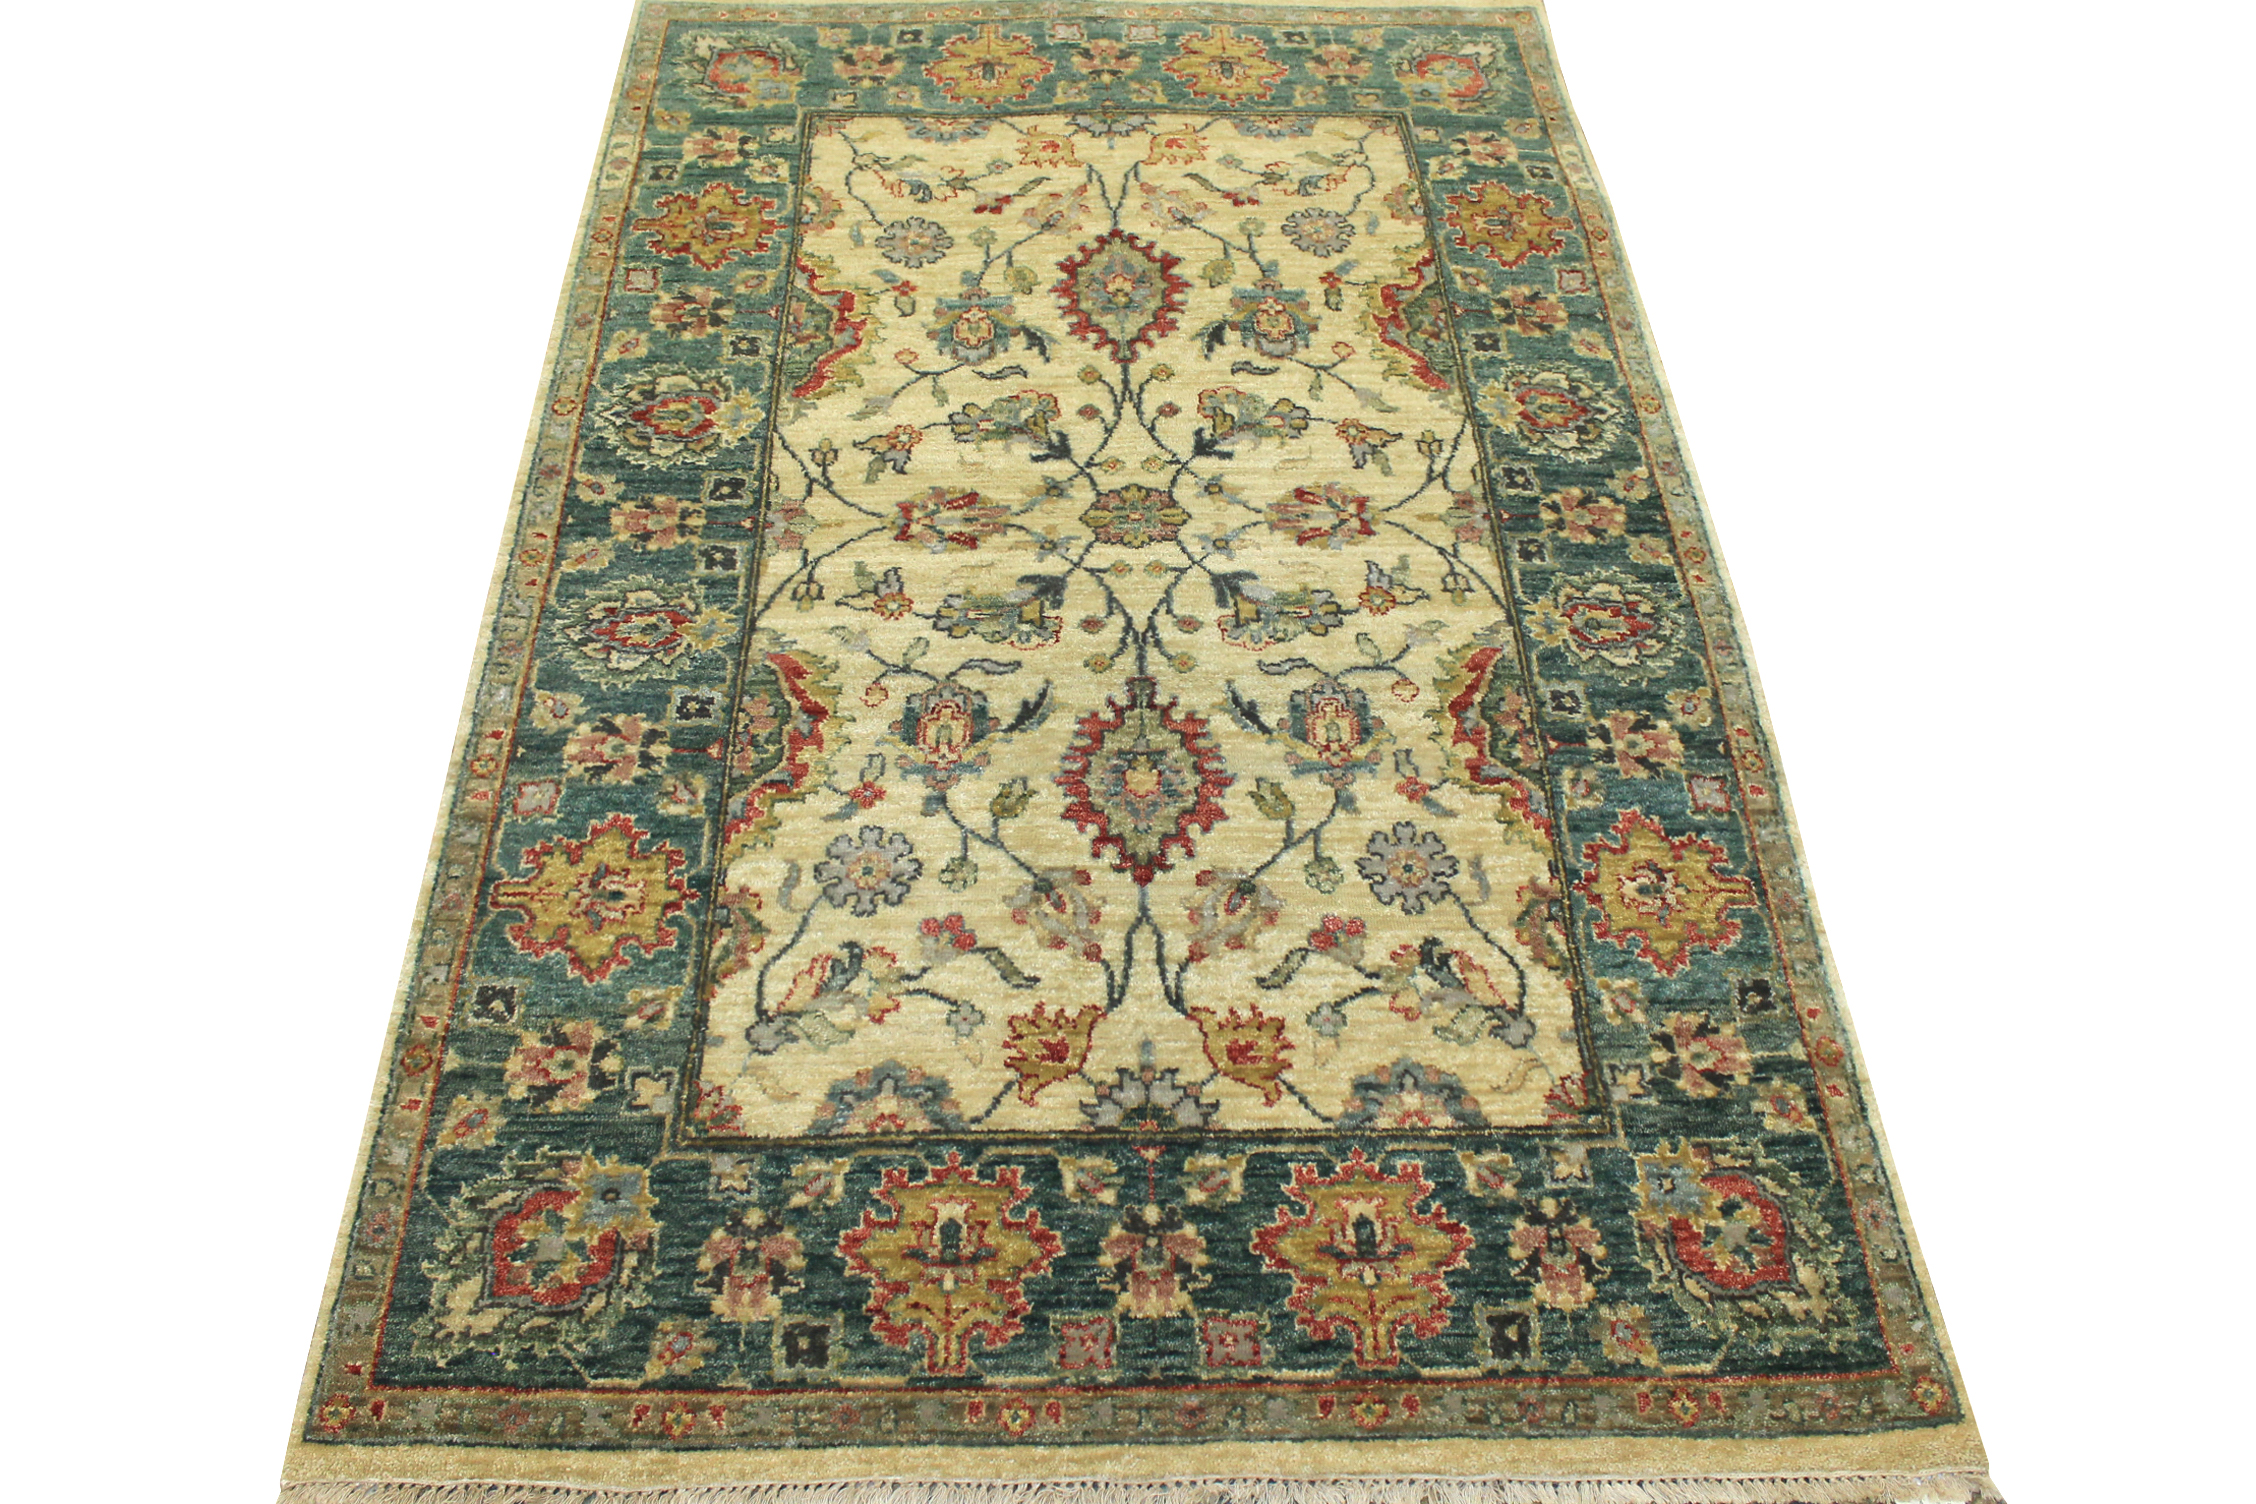 4x6 Traditional Hand Knotted Wool Area Rug - MR8427